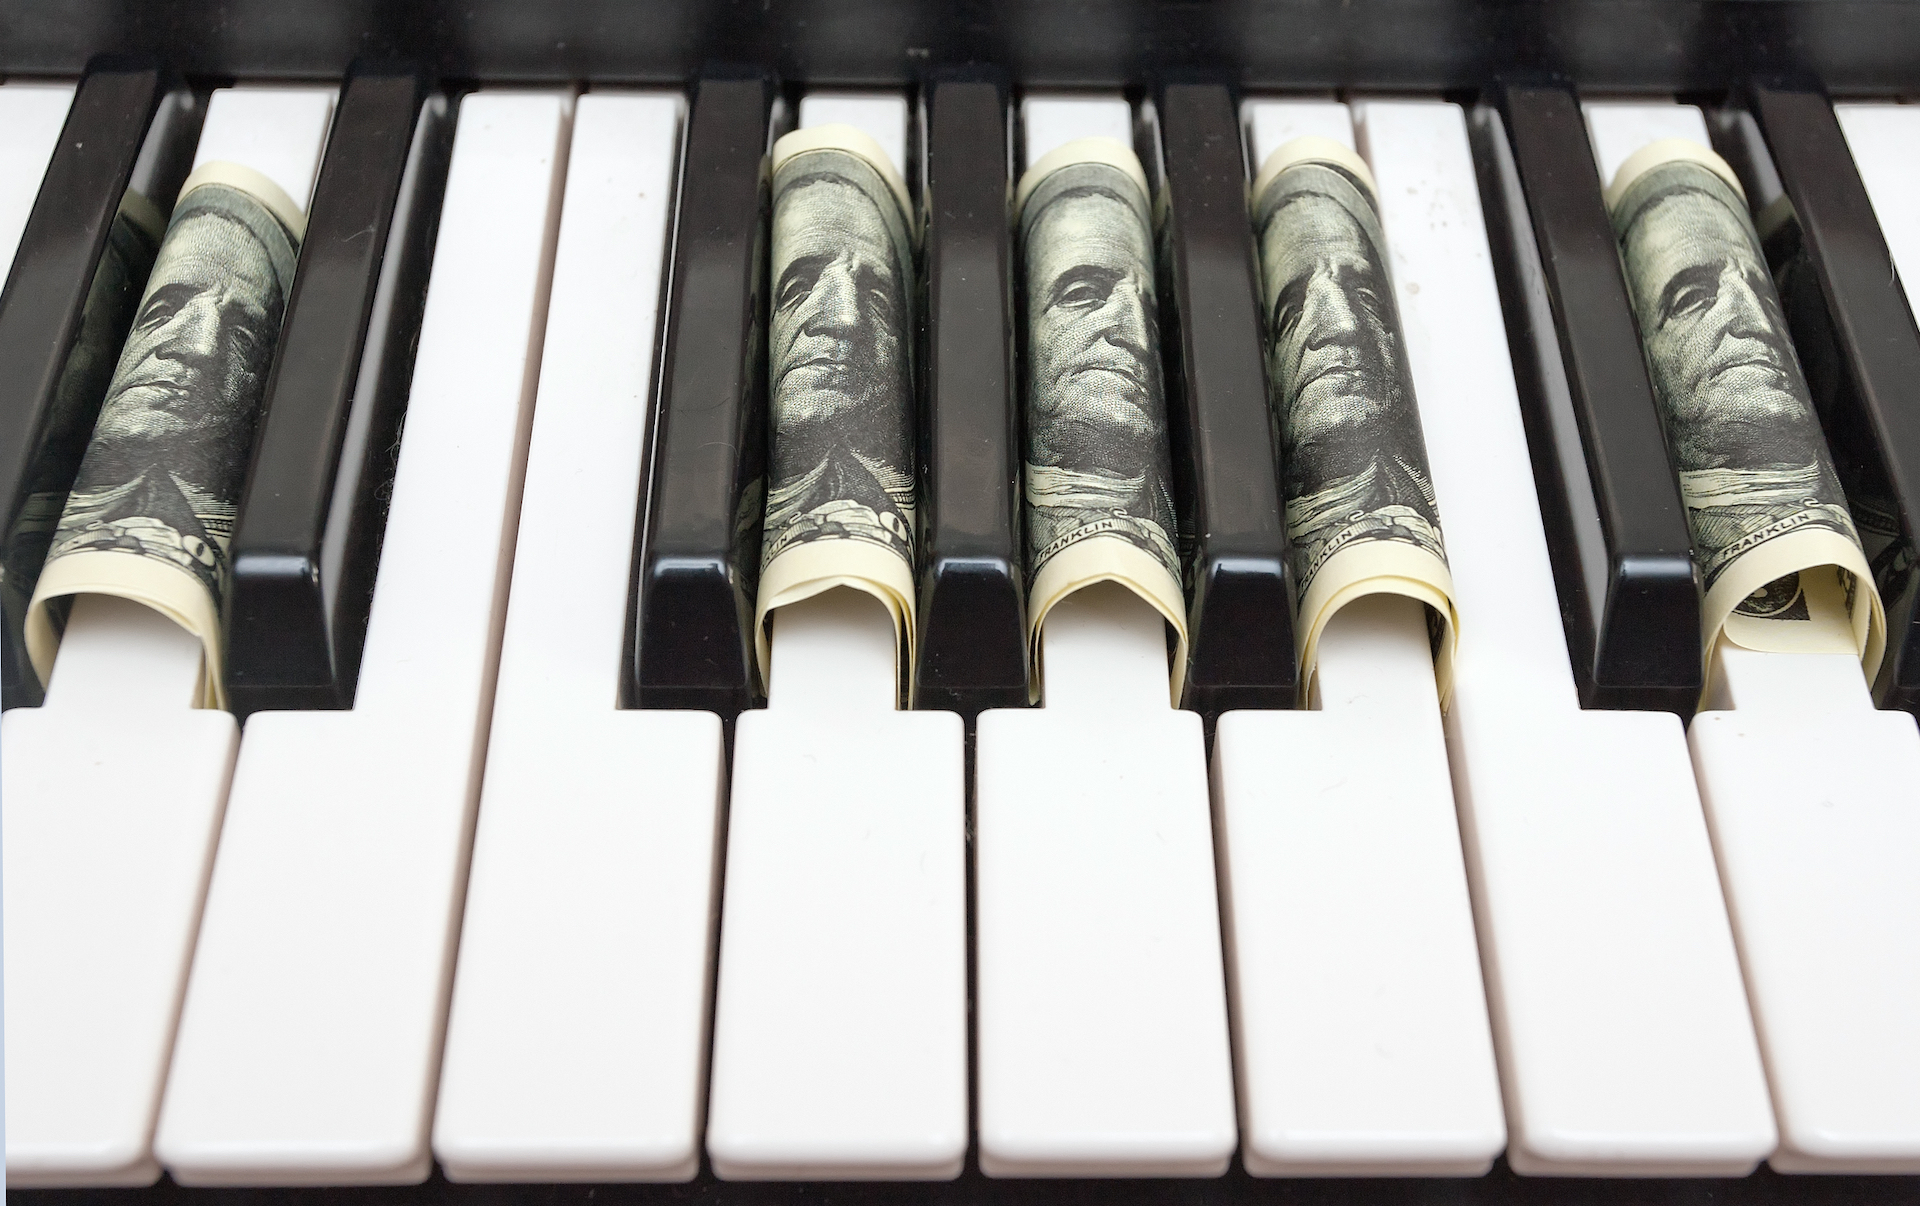 A piano with 100 dollar bills tucked into the keys.